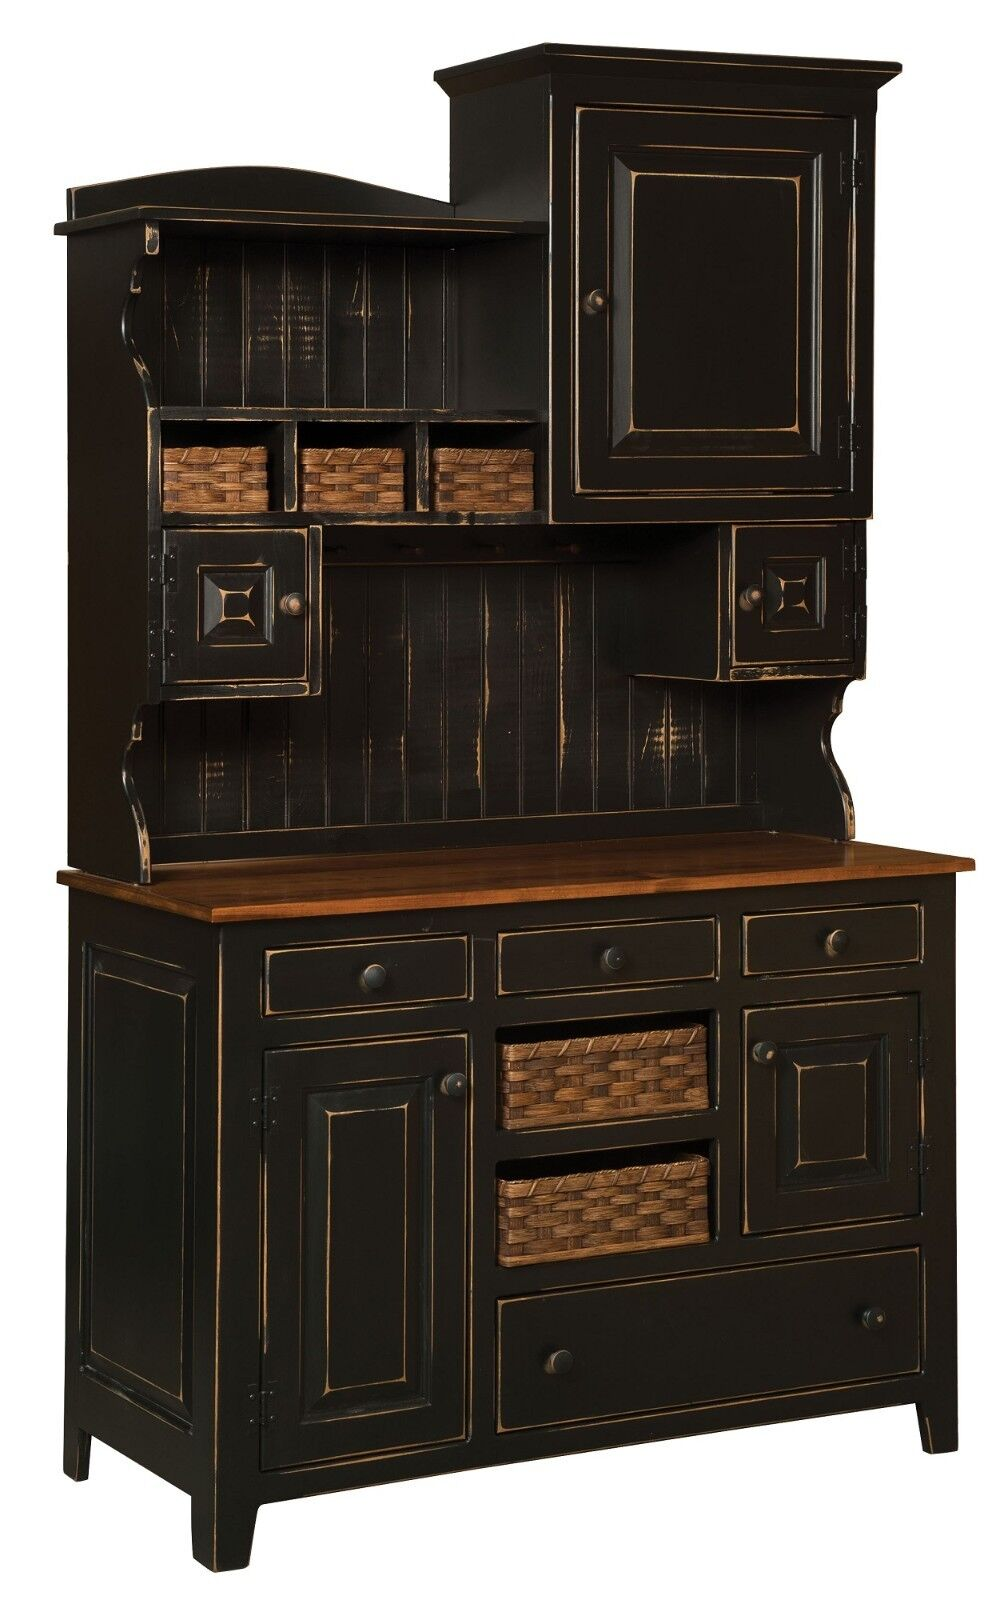 amish country kitchen hutch farm house pantry cupboard wood primitive amish kitchen cabinets creation amish kitchen cabinets